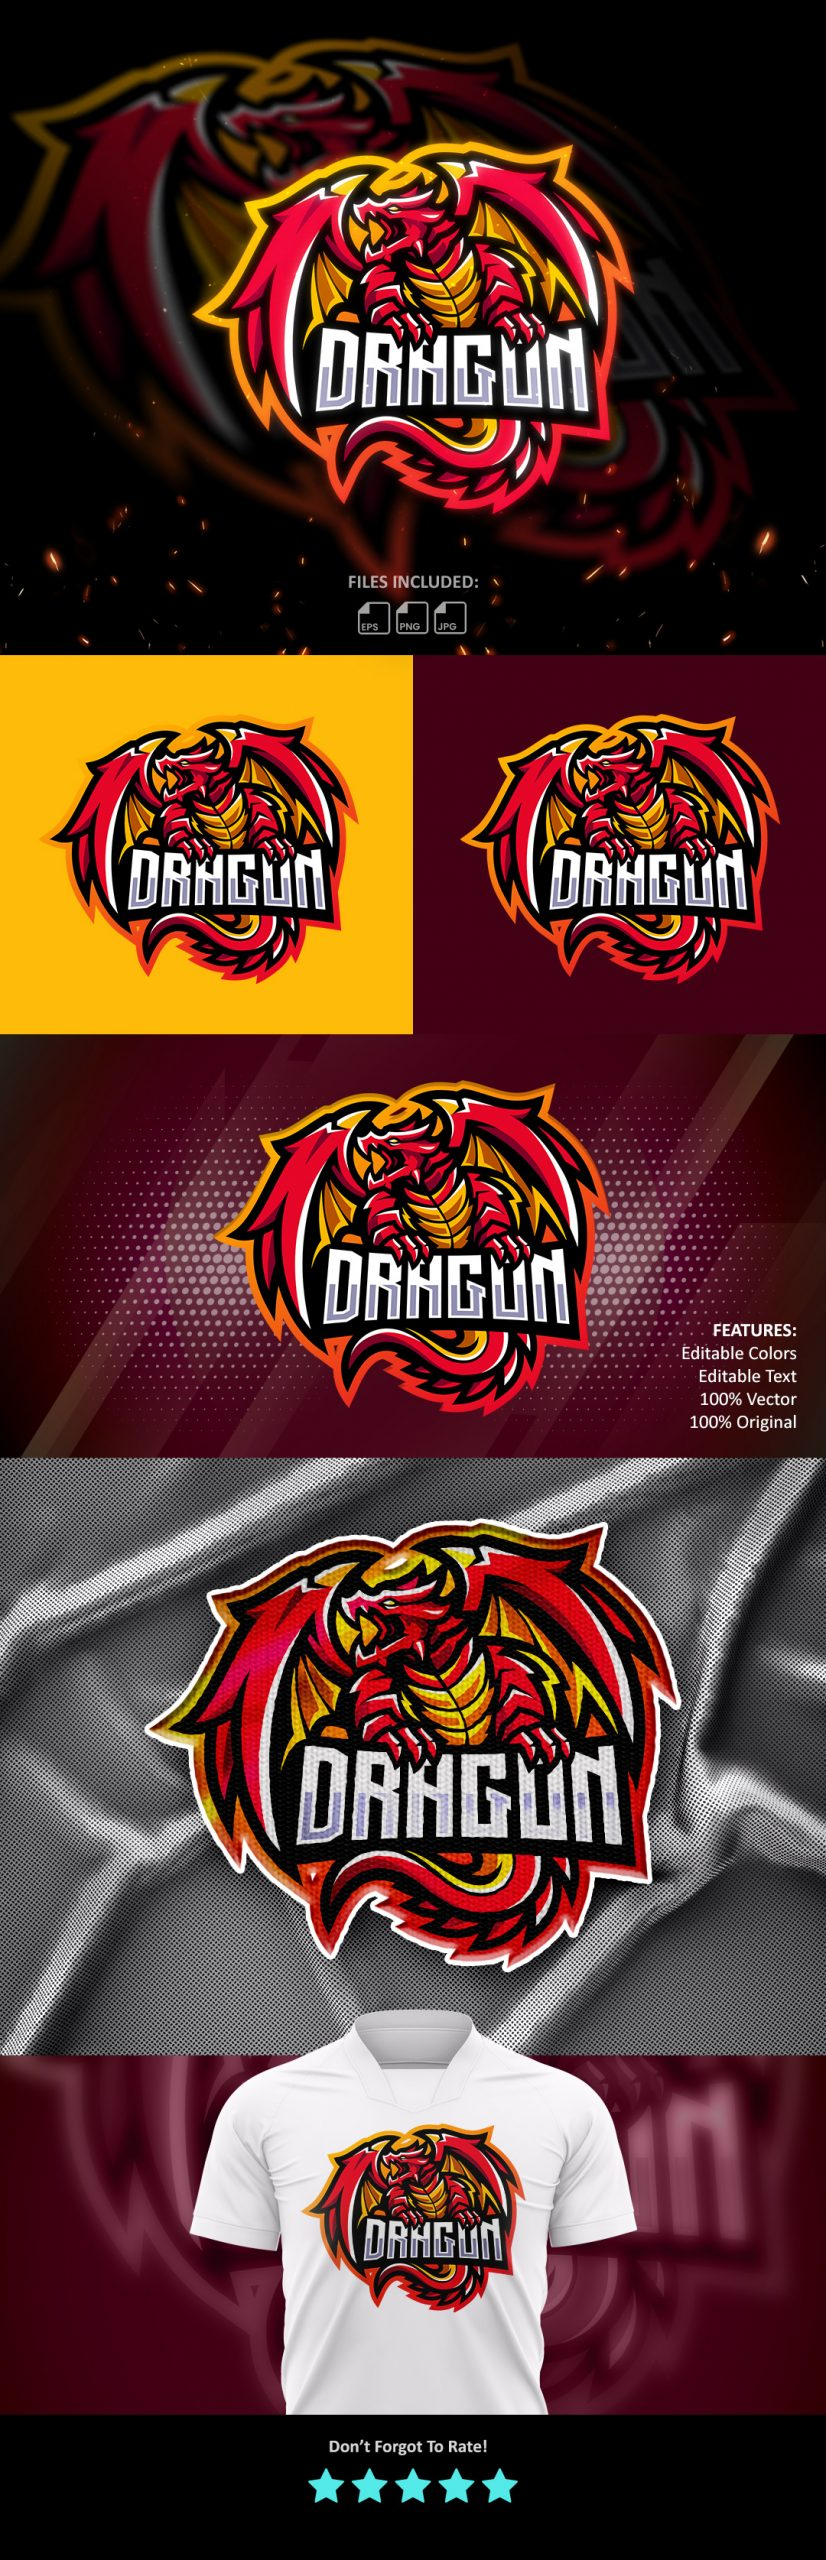 Free-Dragon-Mascot-Logo-Download